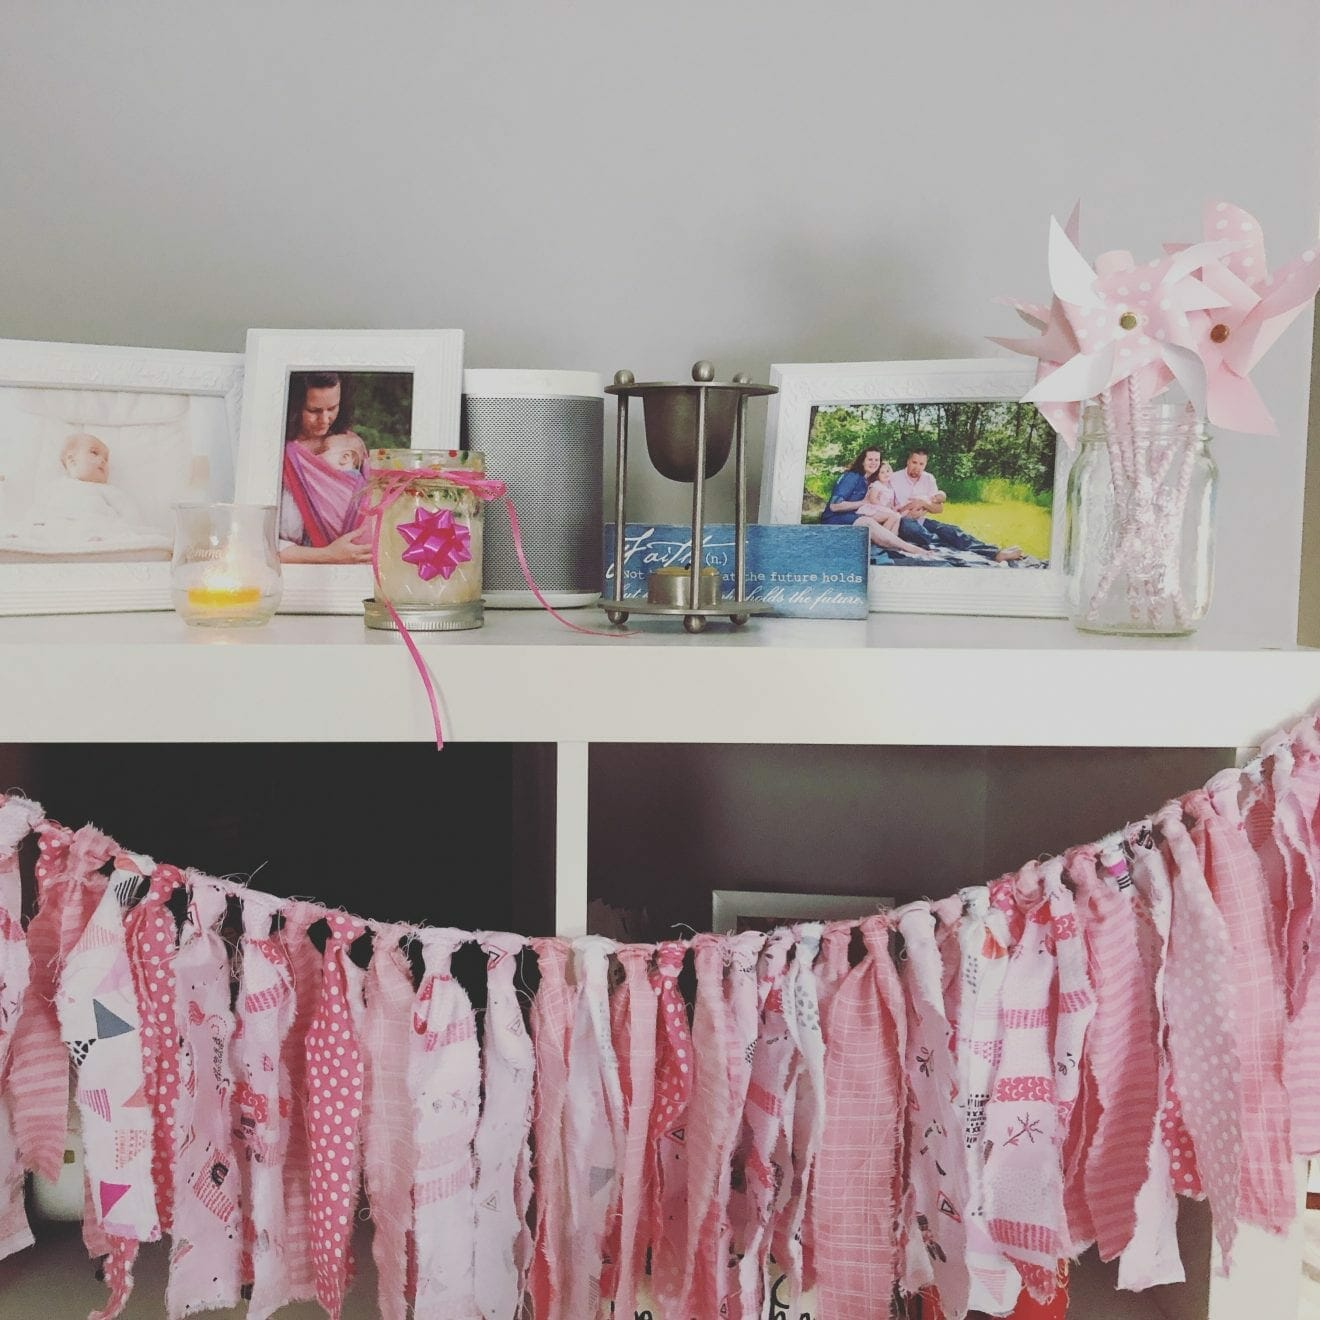 Eli-Grace's memorial shelf, contributed by mother Esther